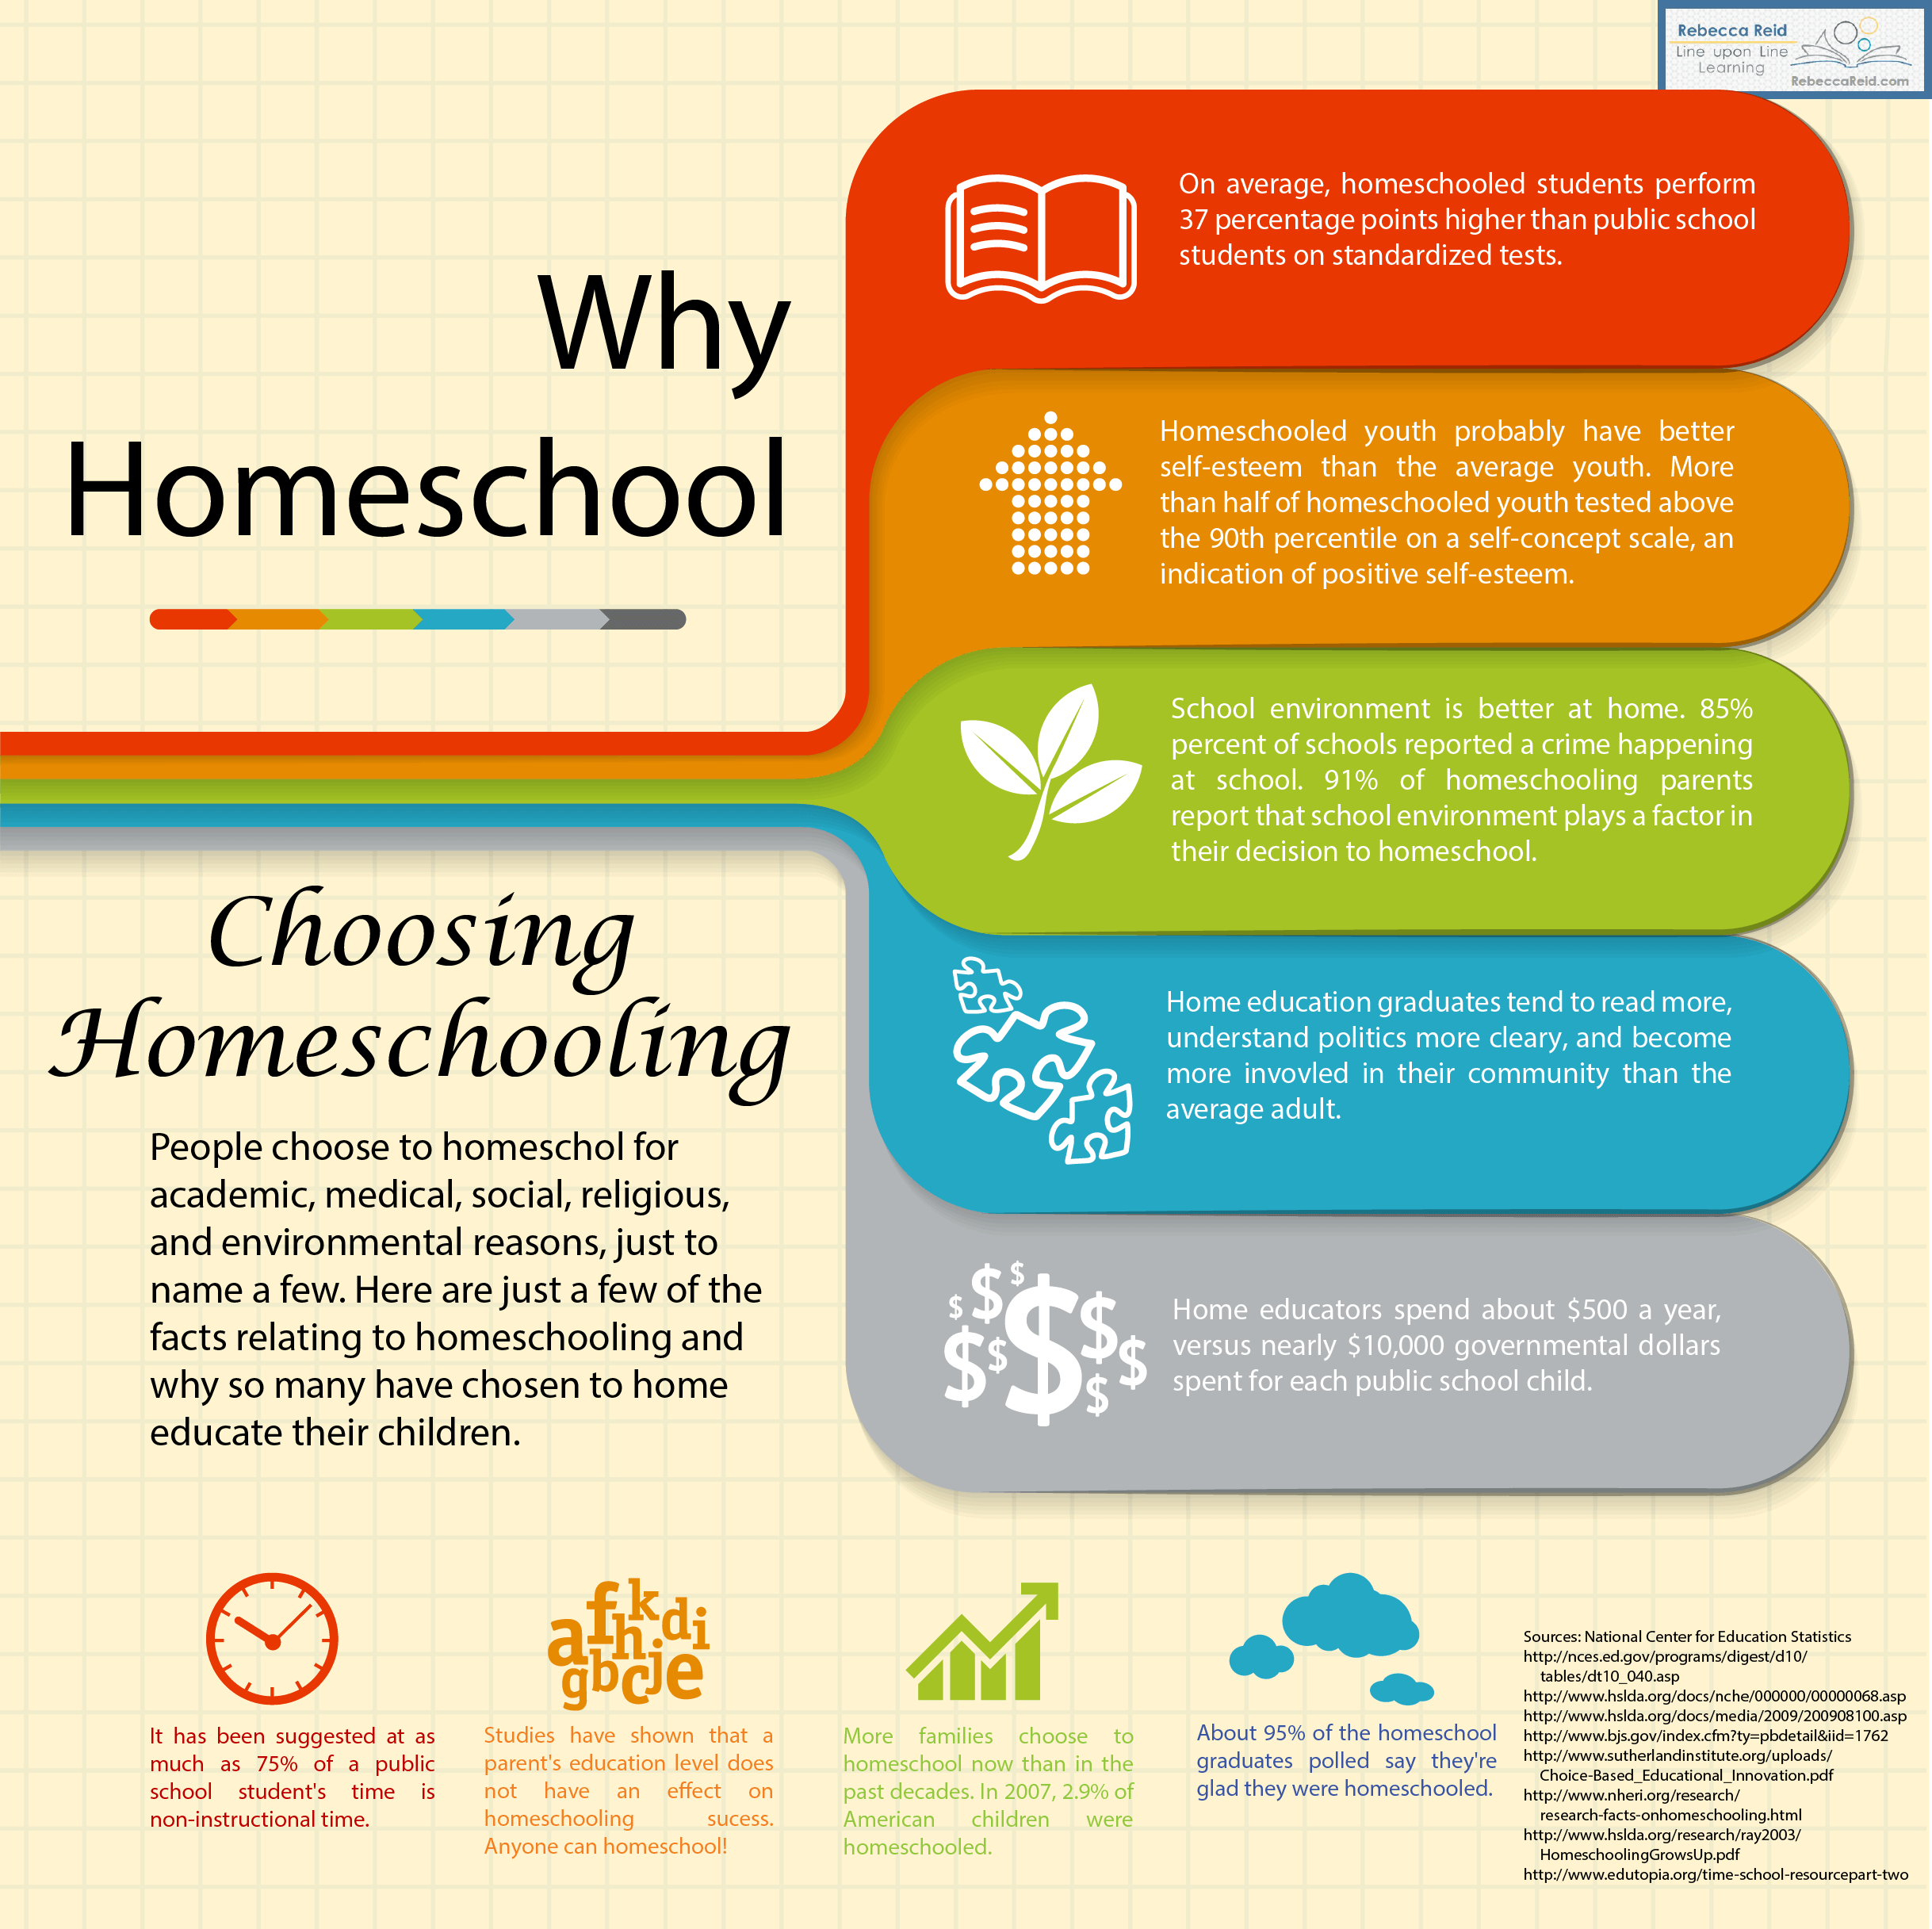 research paper on homeschooling amazon com research paper on homeschooling research essay on homeschooling twistallows ga